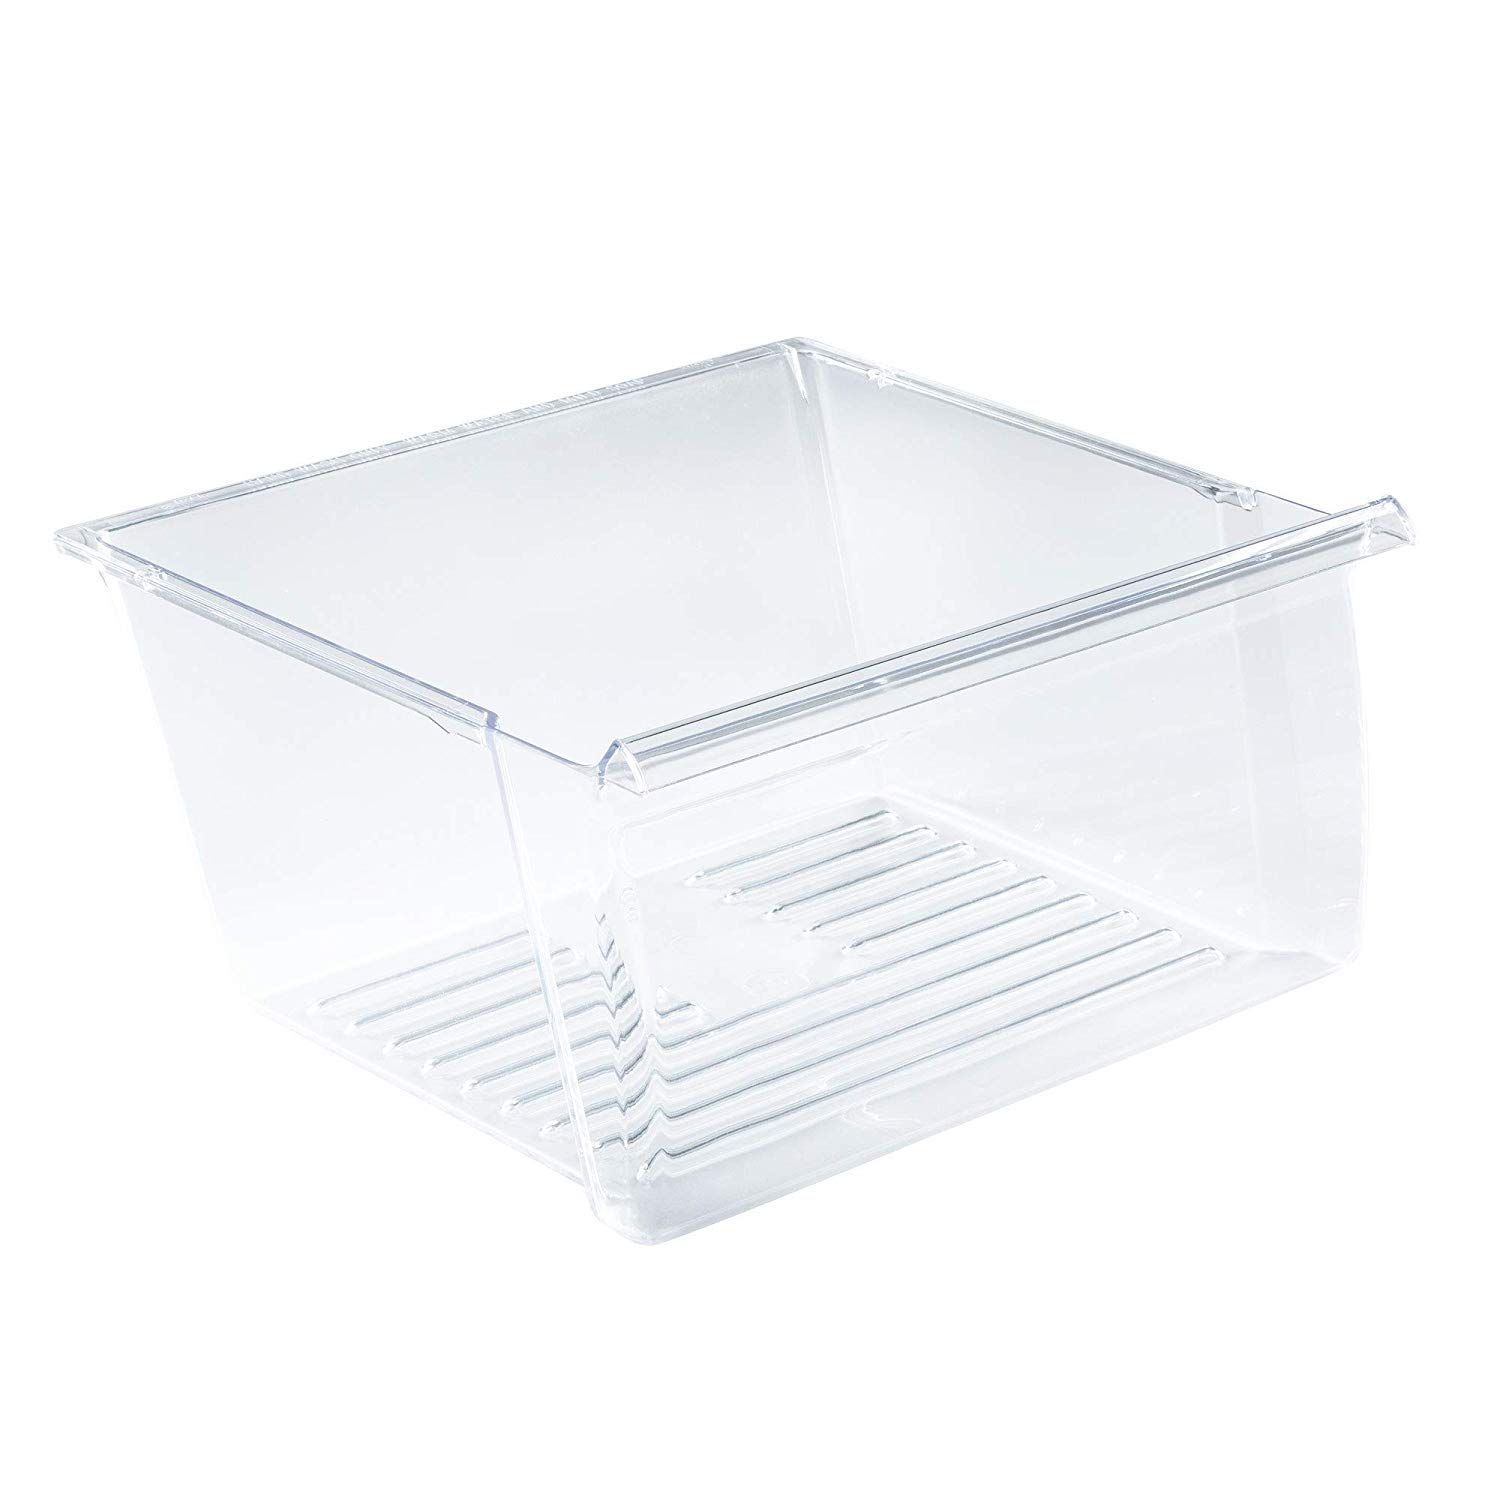 2188661 Crisper Pan (Upper) for Whirlpool Refrigerator - WP2188661